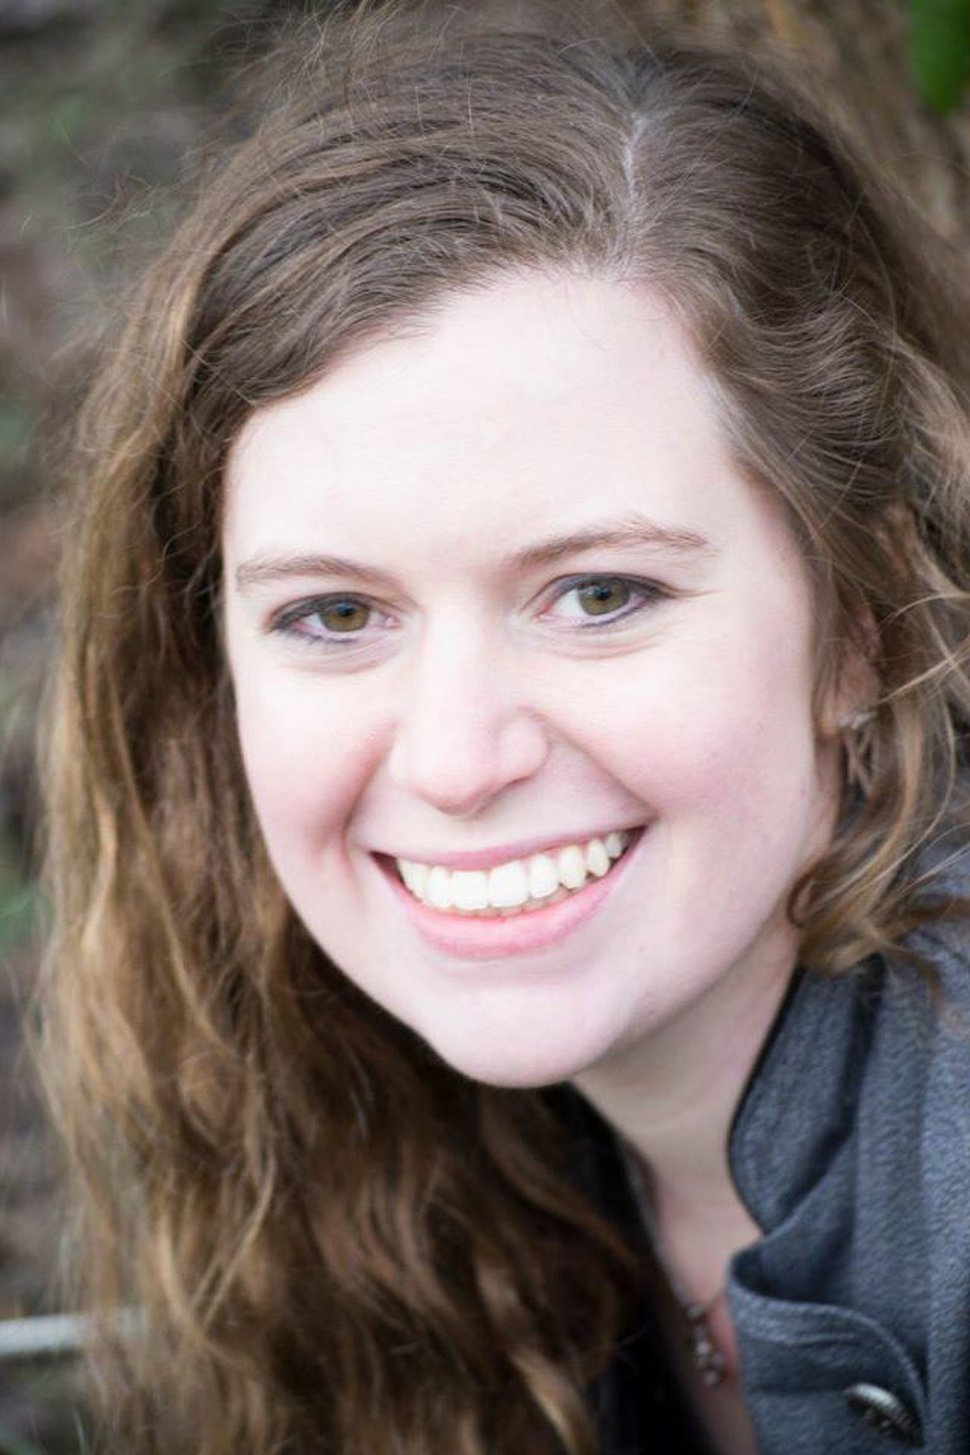 McKenna Johnson is the women's rights specialist for Mormon Women for Ethical Government